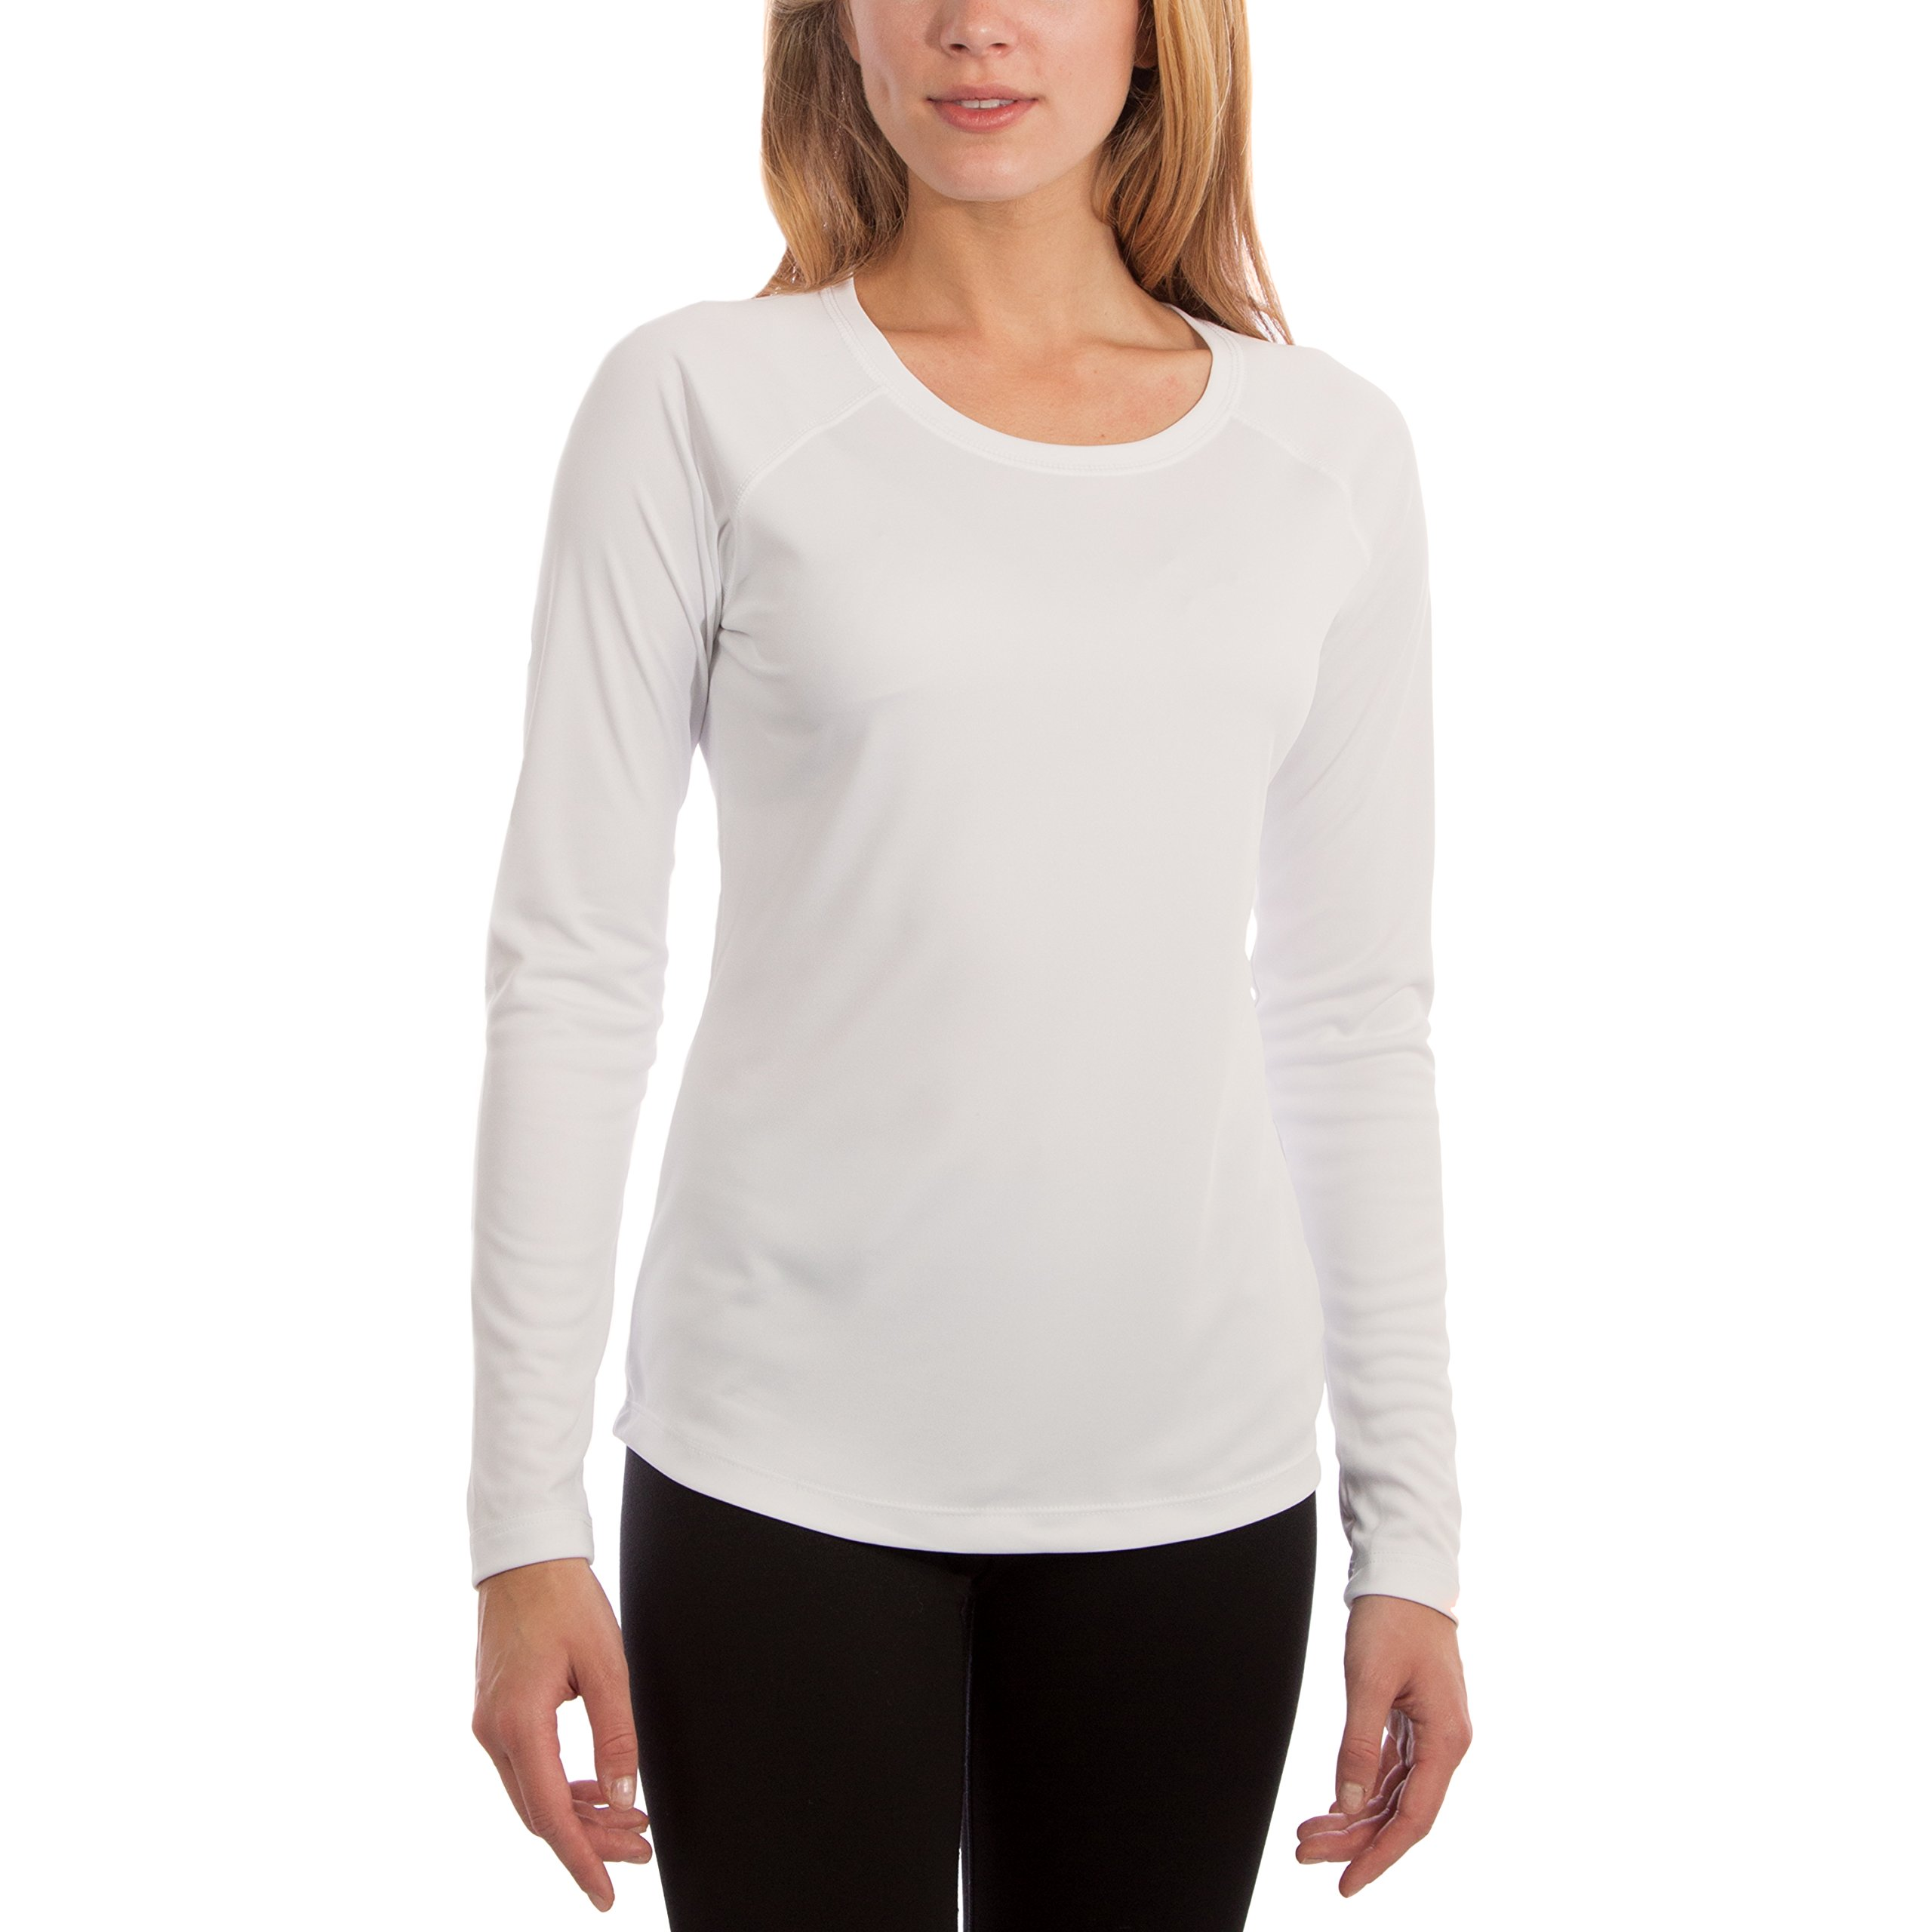 Vapor Apparel Women's UPF 50+ UV/Sun Protection Long Sleeve T-shirt Medium White